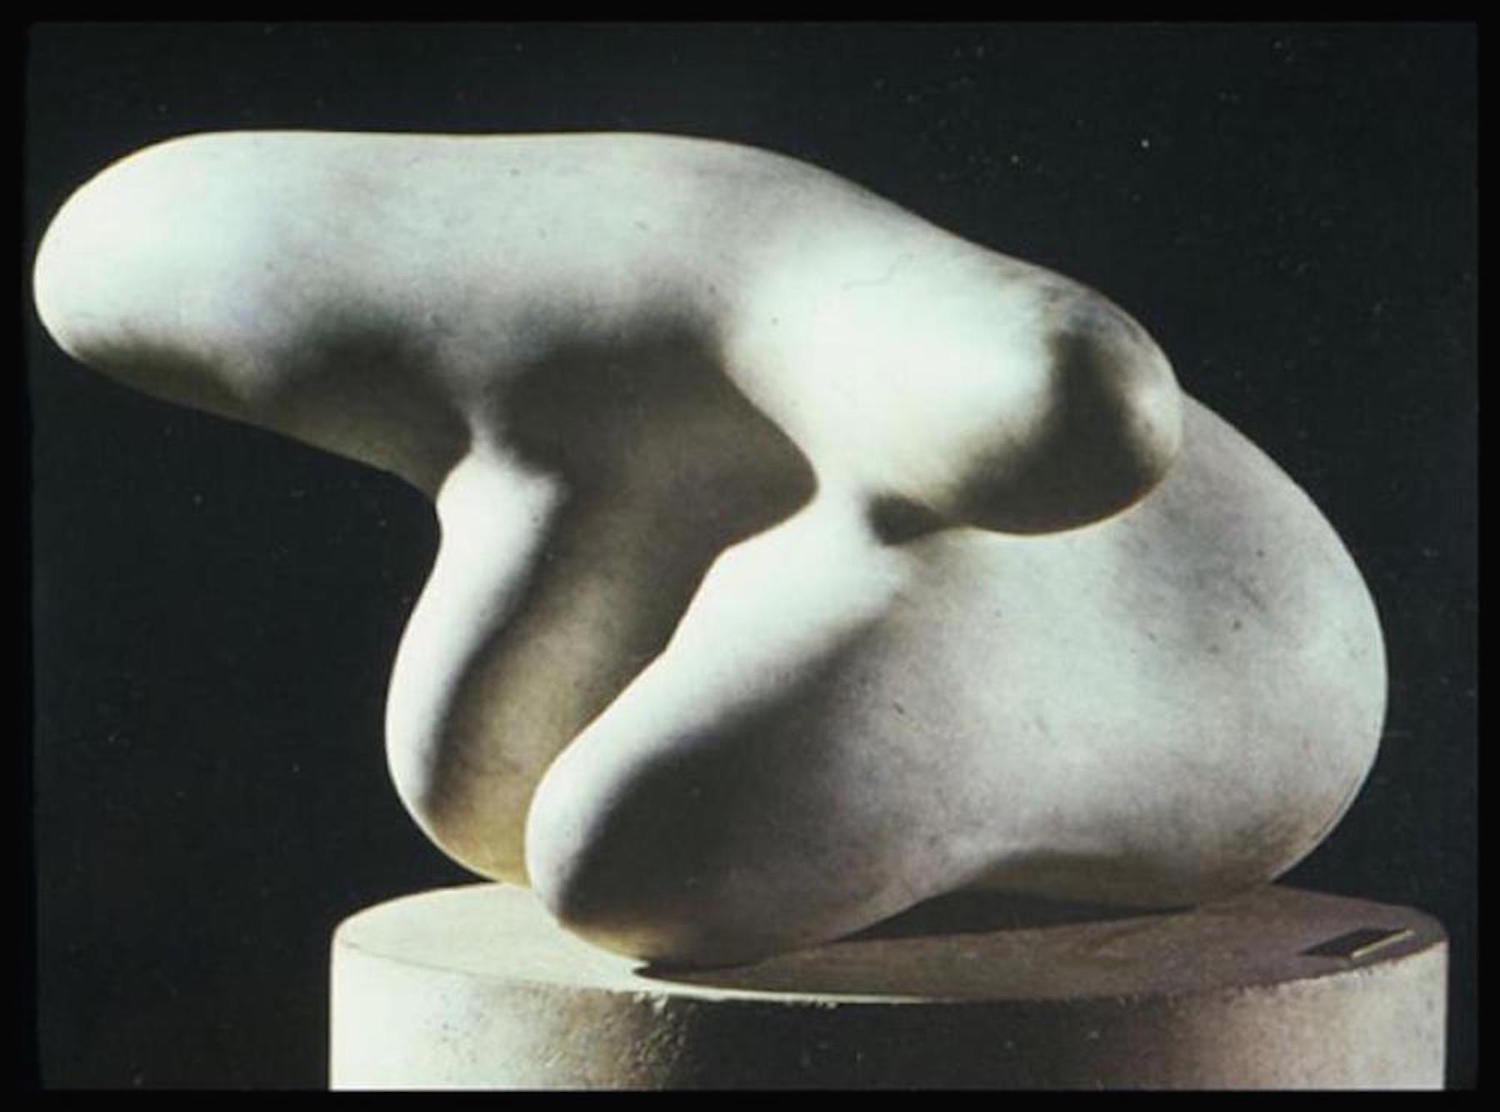 art & design ] Jean Arp's organic forms - NK Essentials